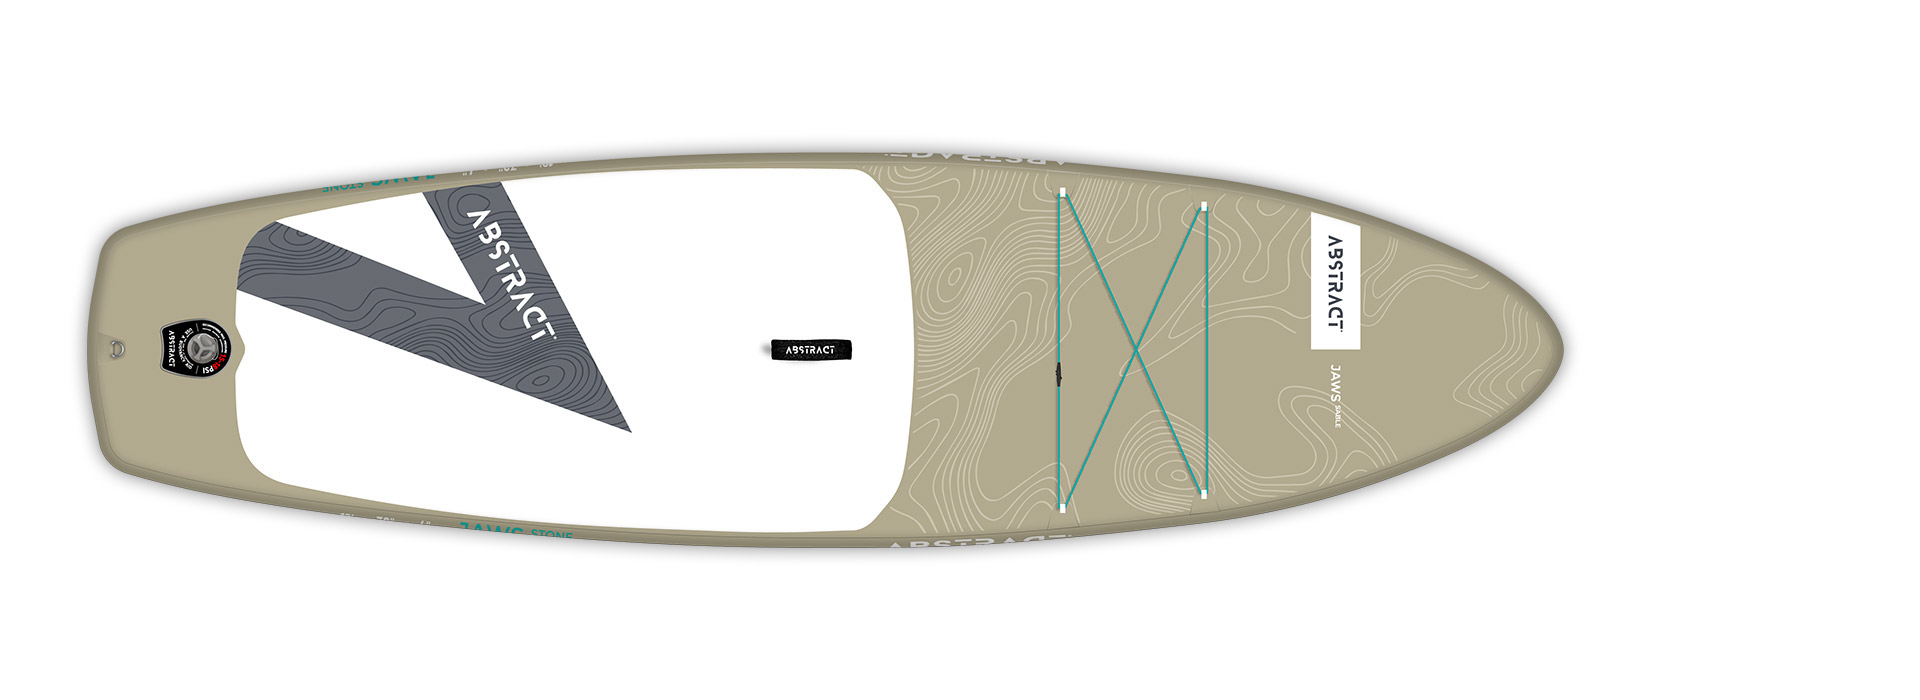 Planche de paddle Board gonflable Jaws Sable (Beige) Abstract 2021